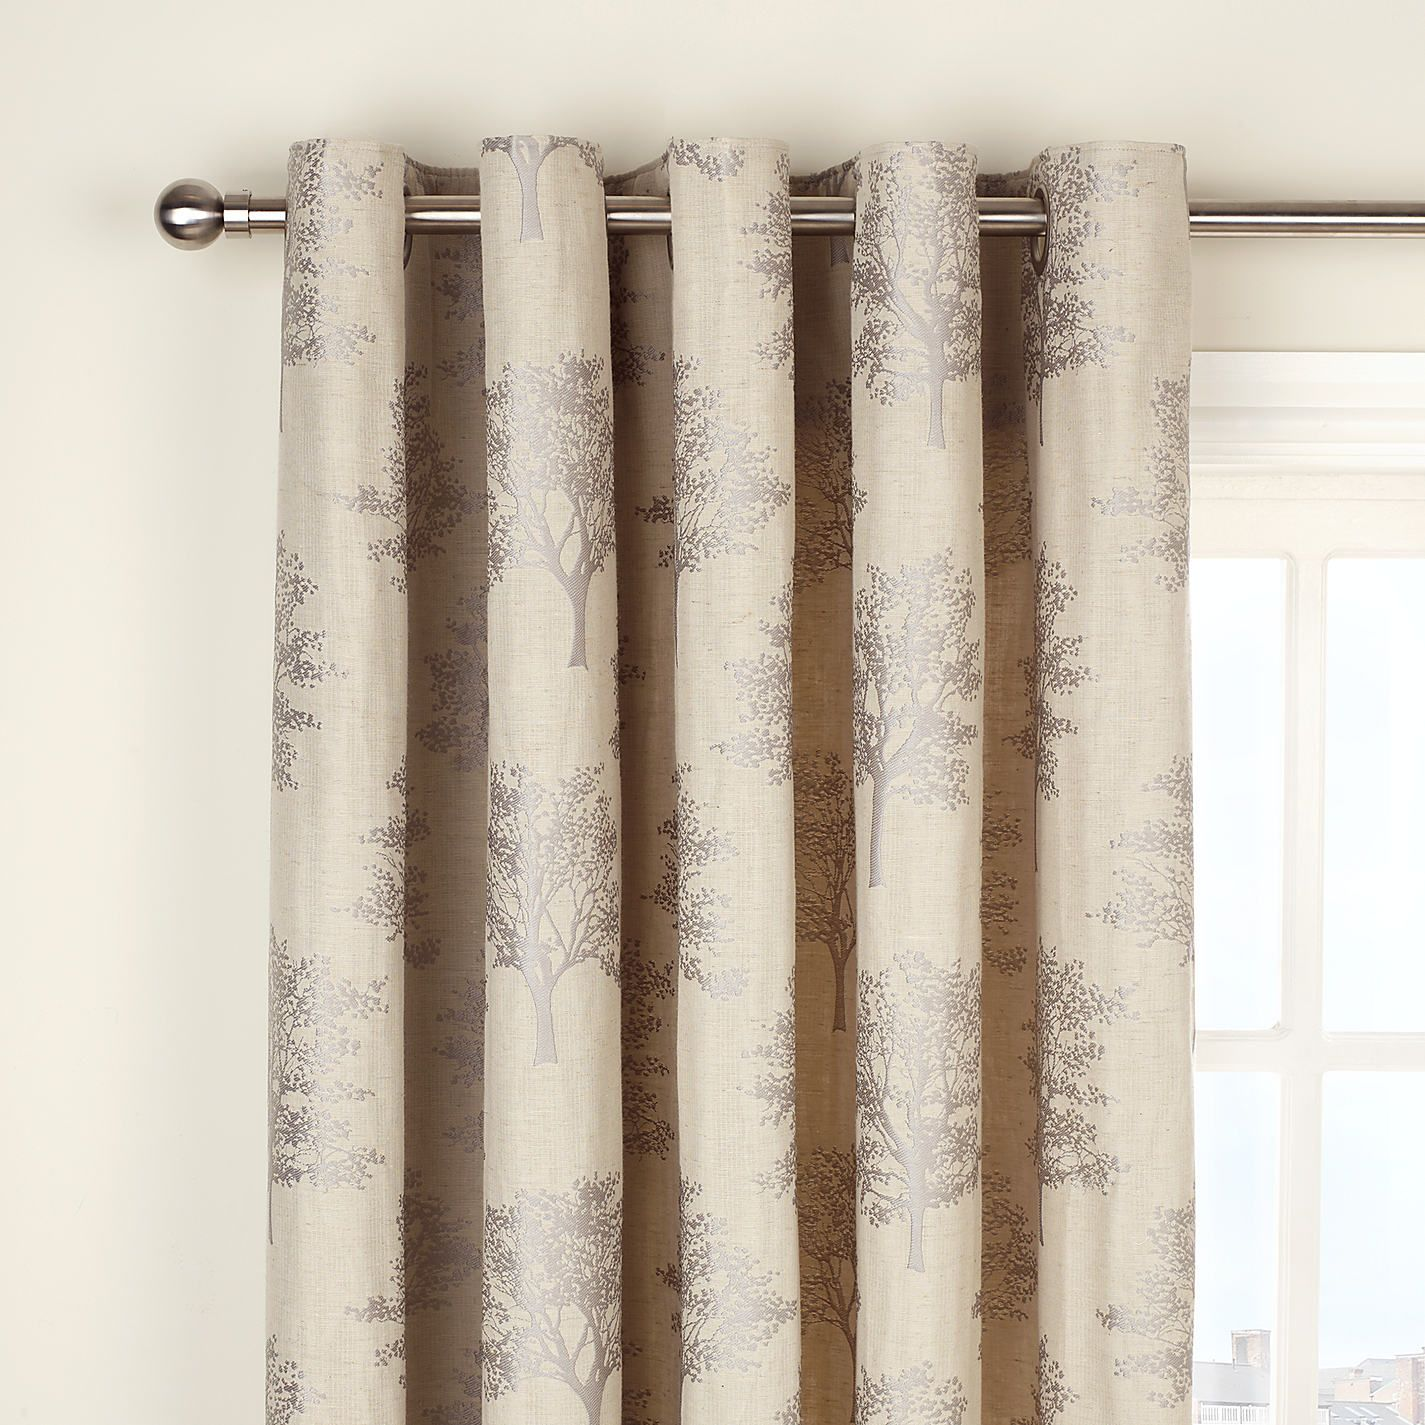 Buy Curtains John Lewis Oakley Trees Eyelet Lined Curtains Natural